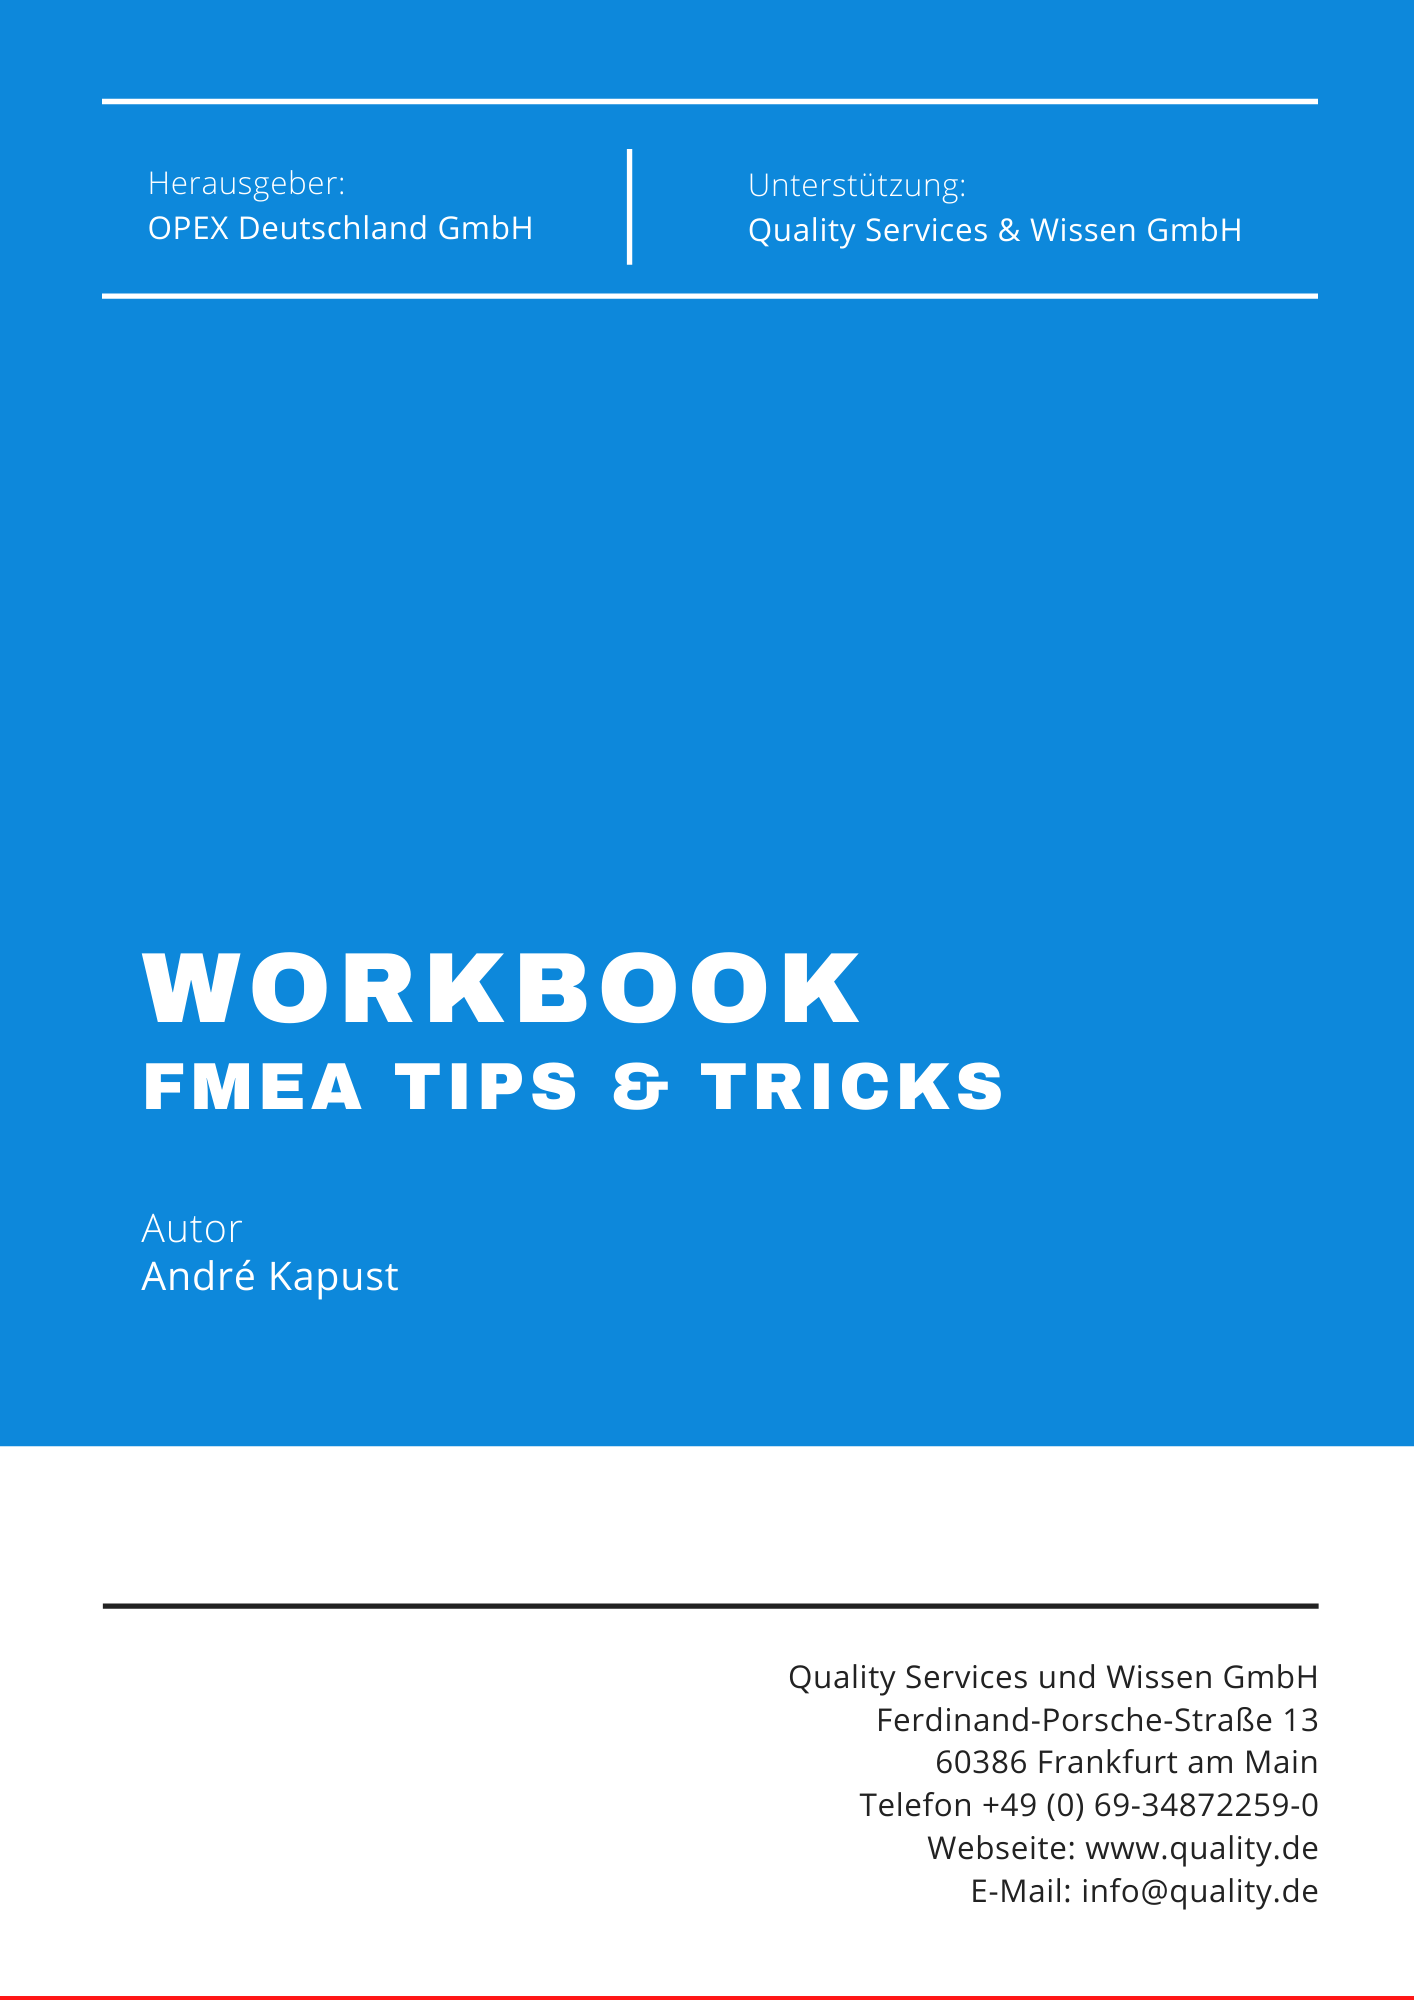 FMEA Workbook Tips & Tricks